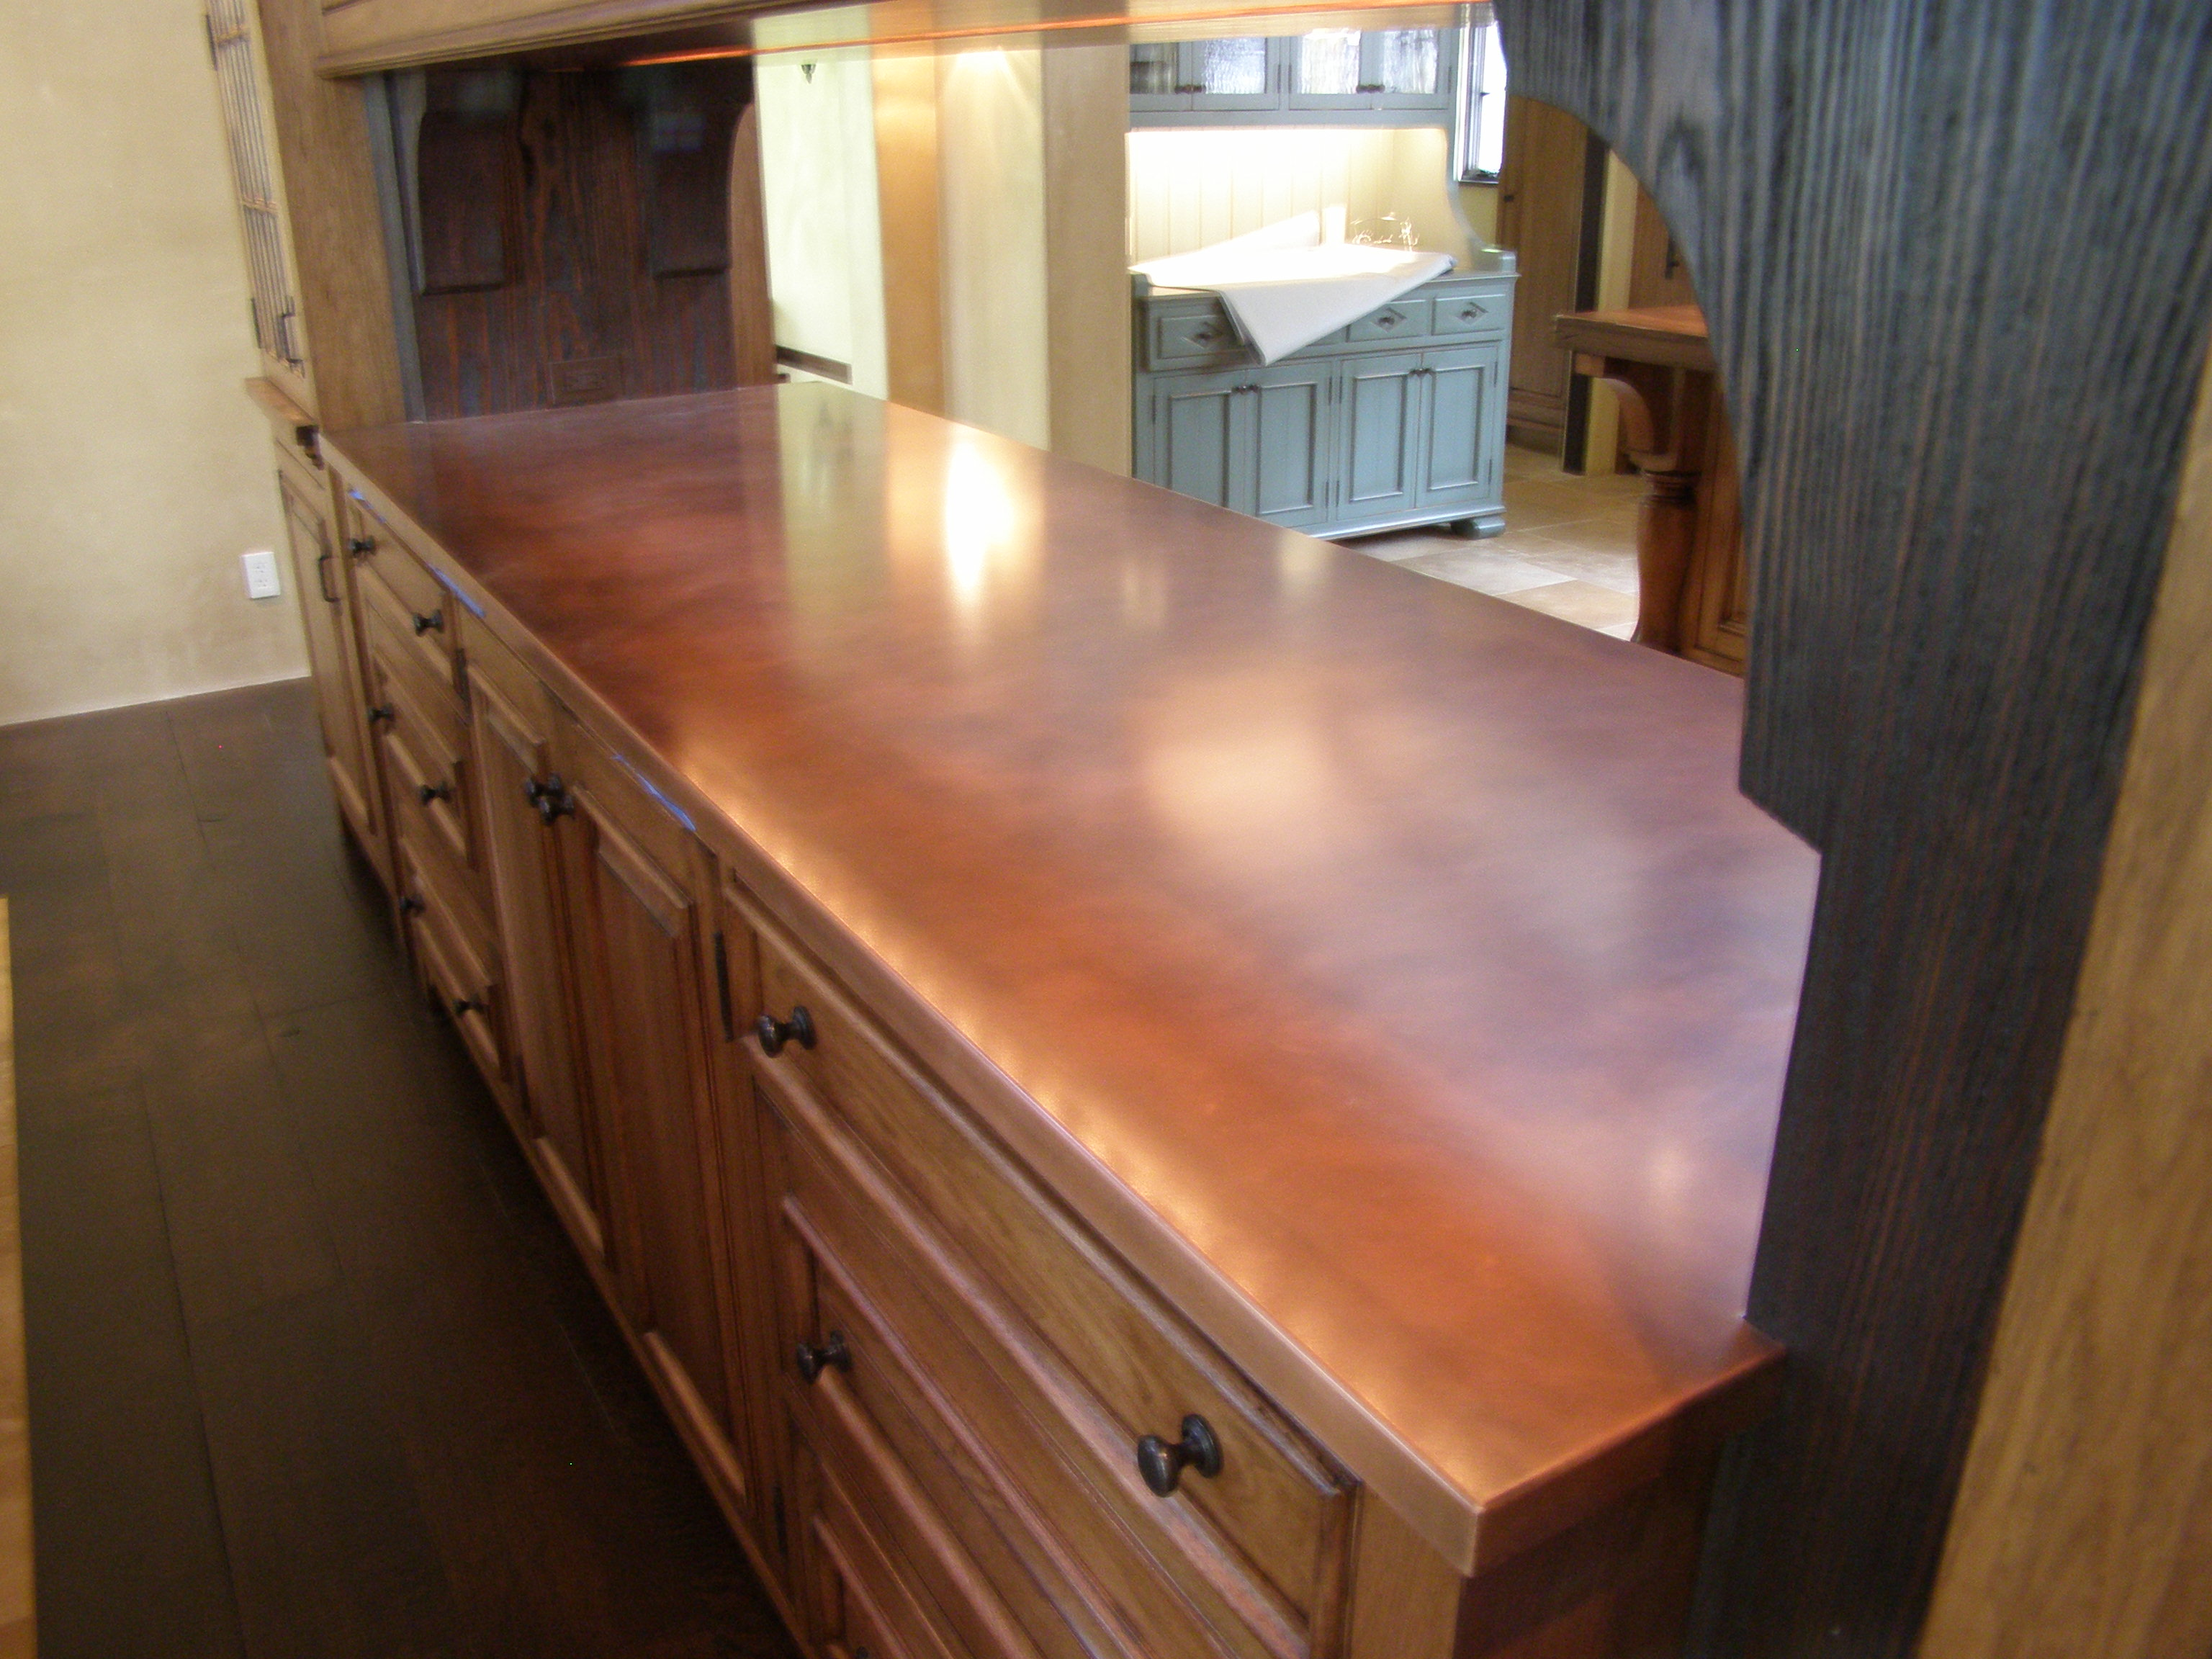 Copper Pass-Through Countertop